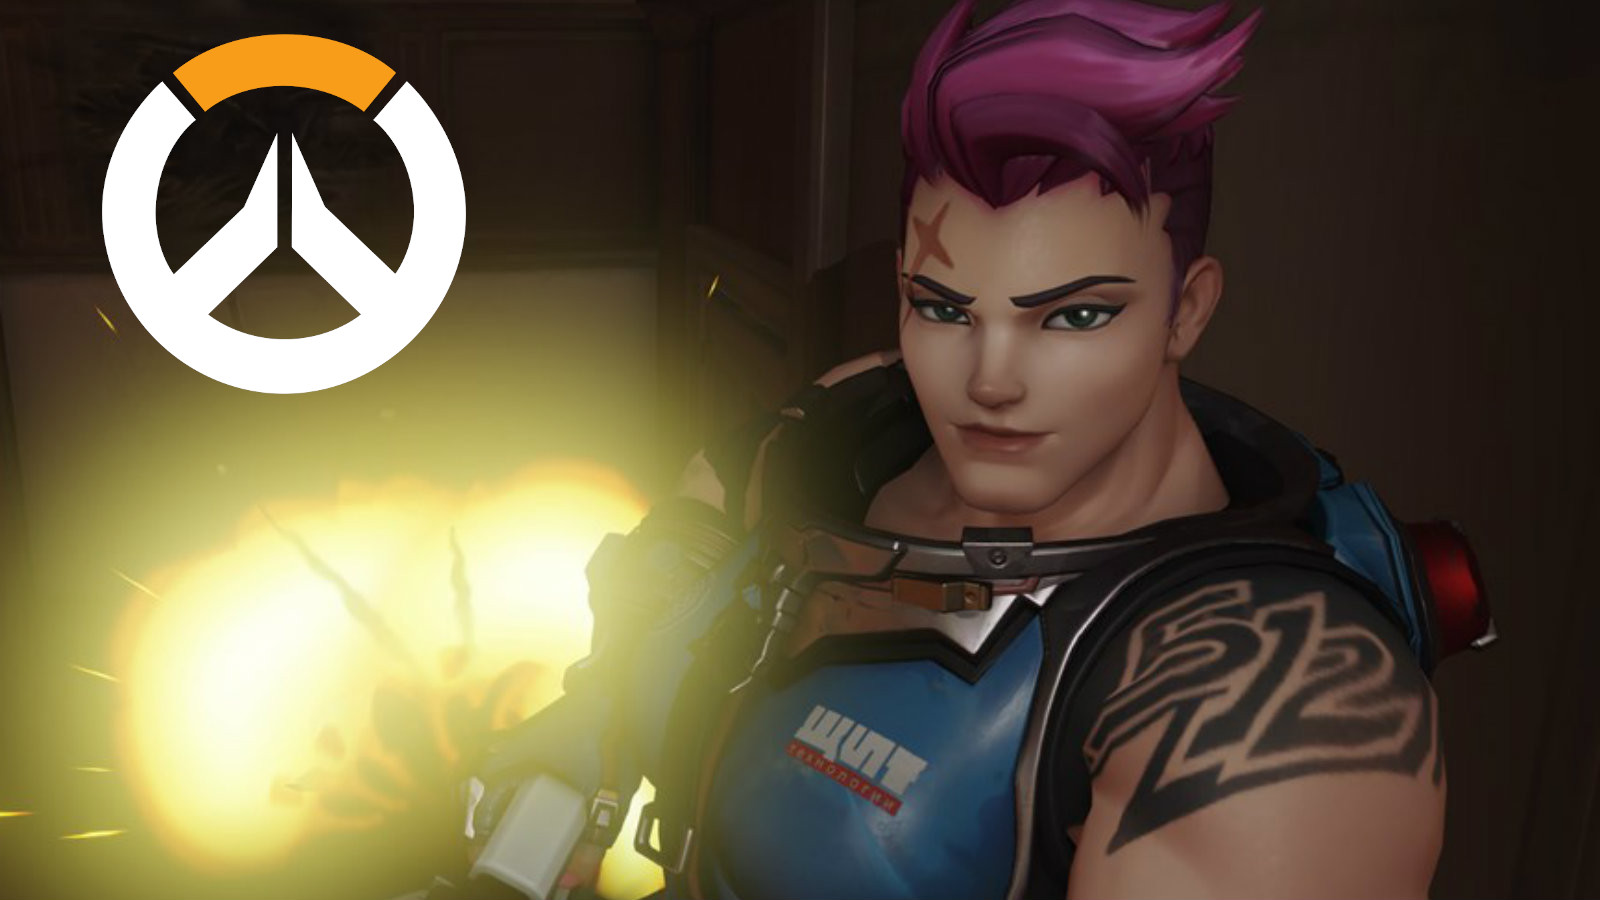 Zarya from Overwatch grins as an explosion happens behind her